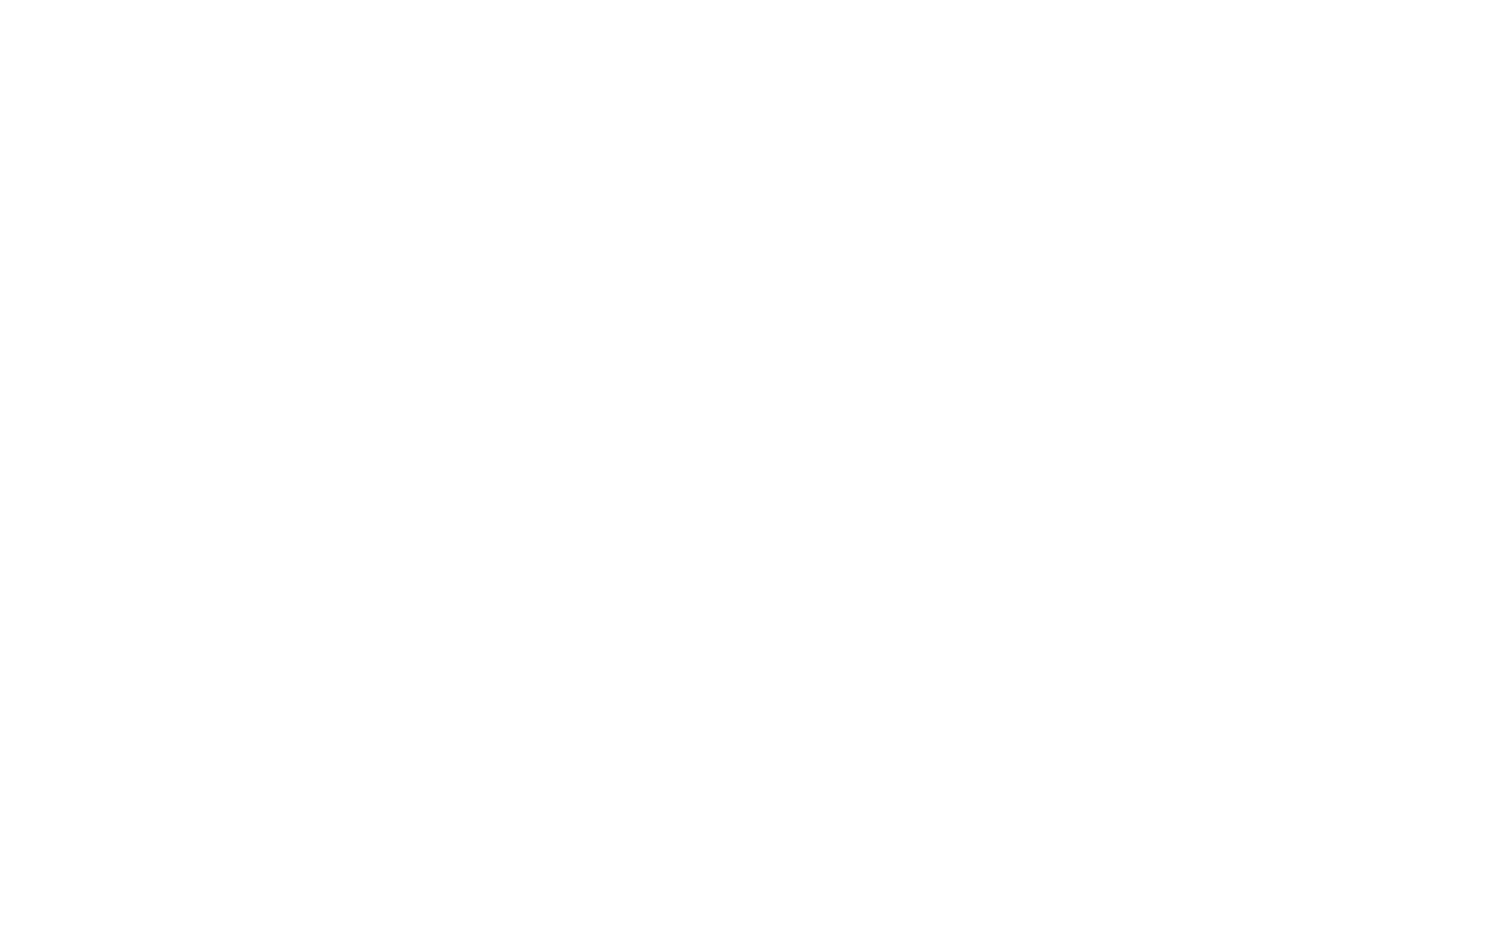 On The Go Media